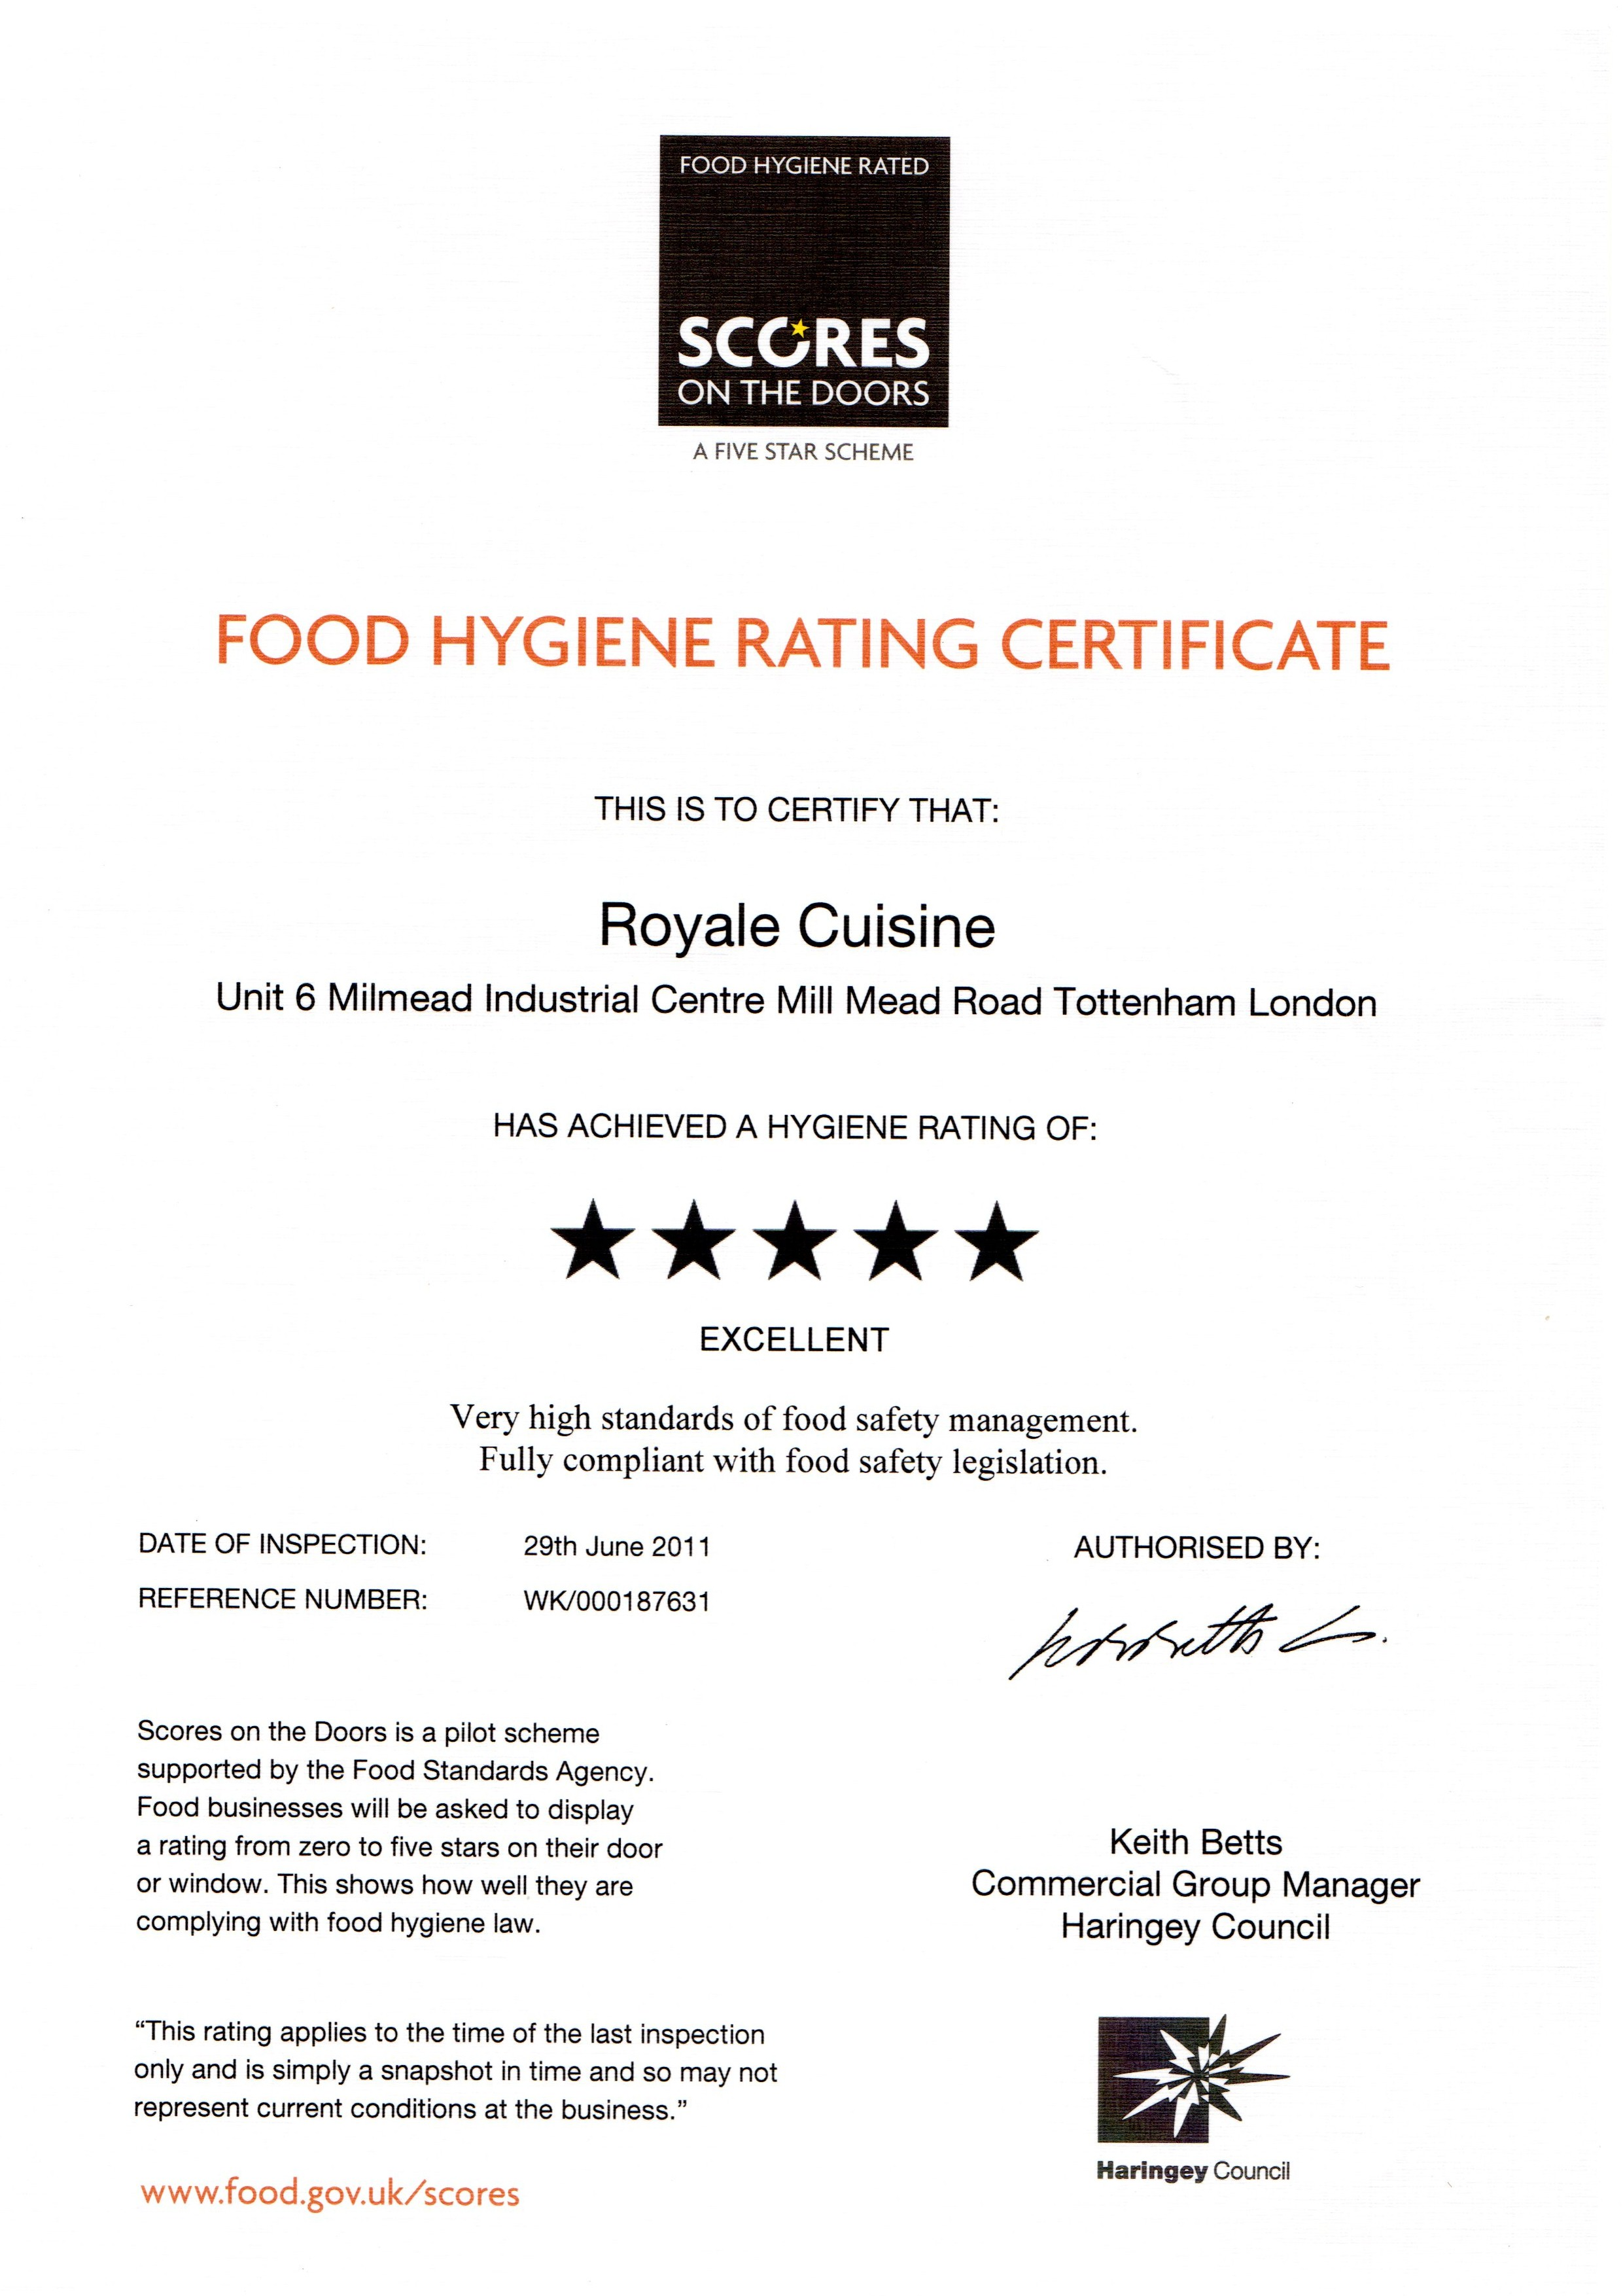 Food Hygeine Rating Scores on the Doors Certificate ...  sc 1 st  Royale Cuisine & Royale Cuisine | Accreditation